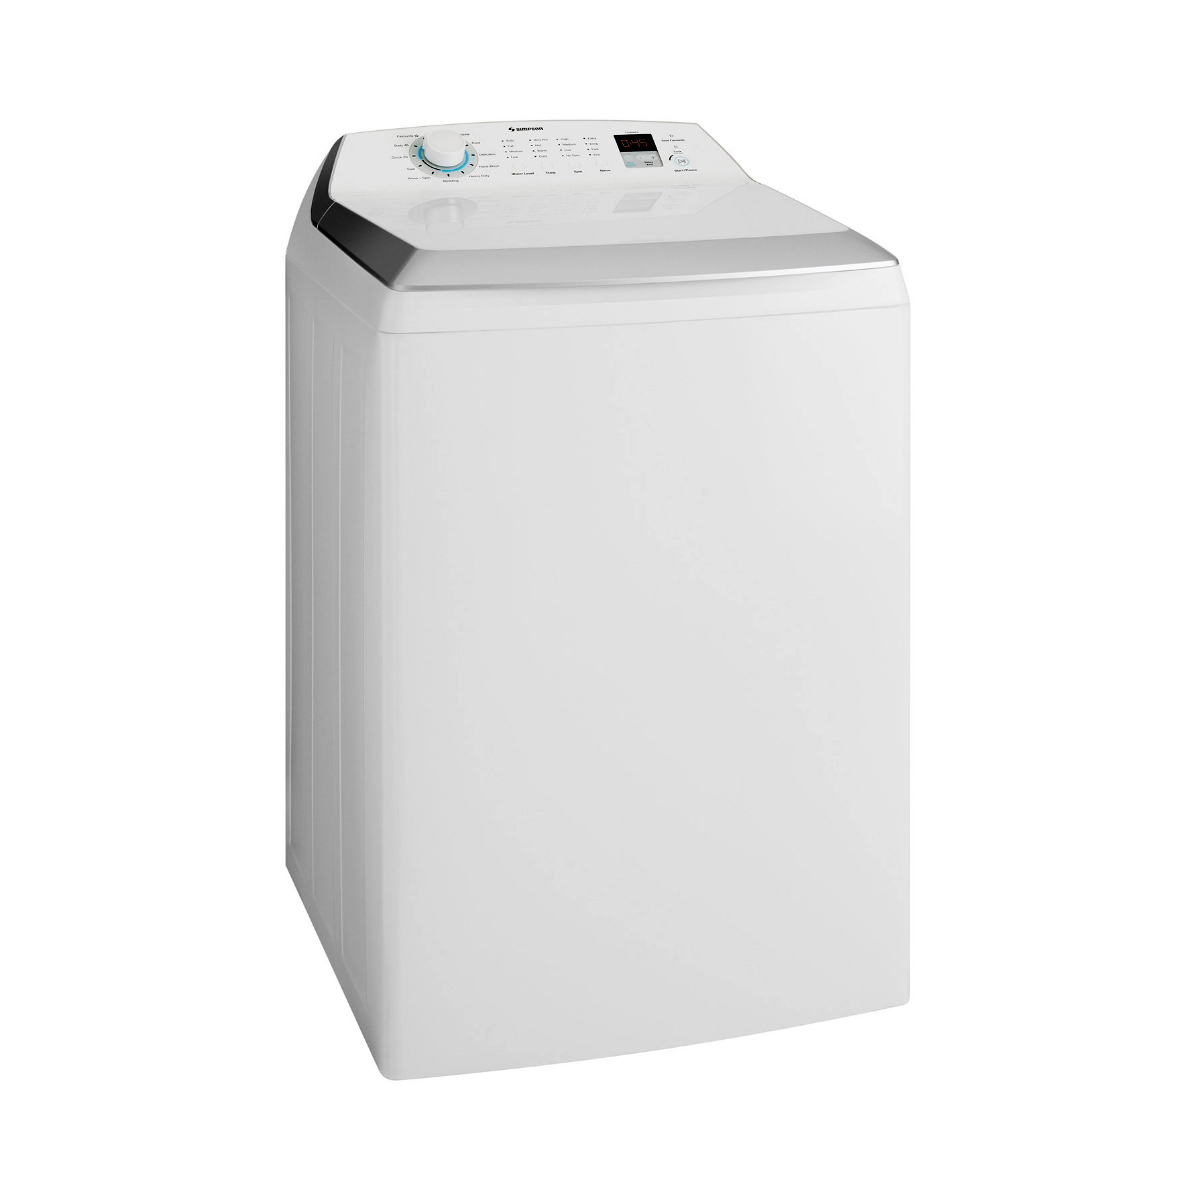 Simpson SWT1043 10kg Top Load Washing Machine 42375